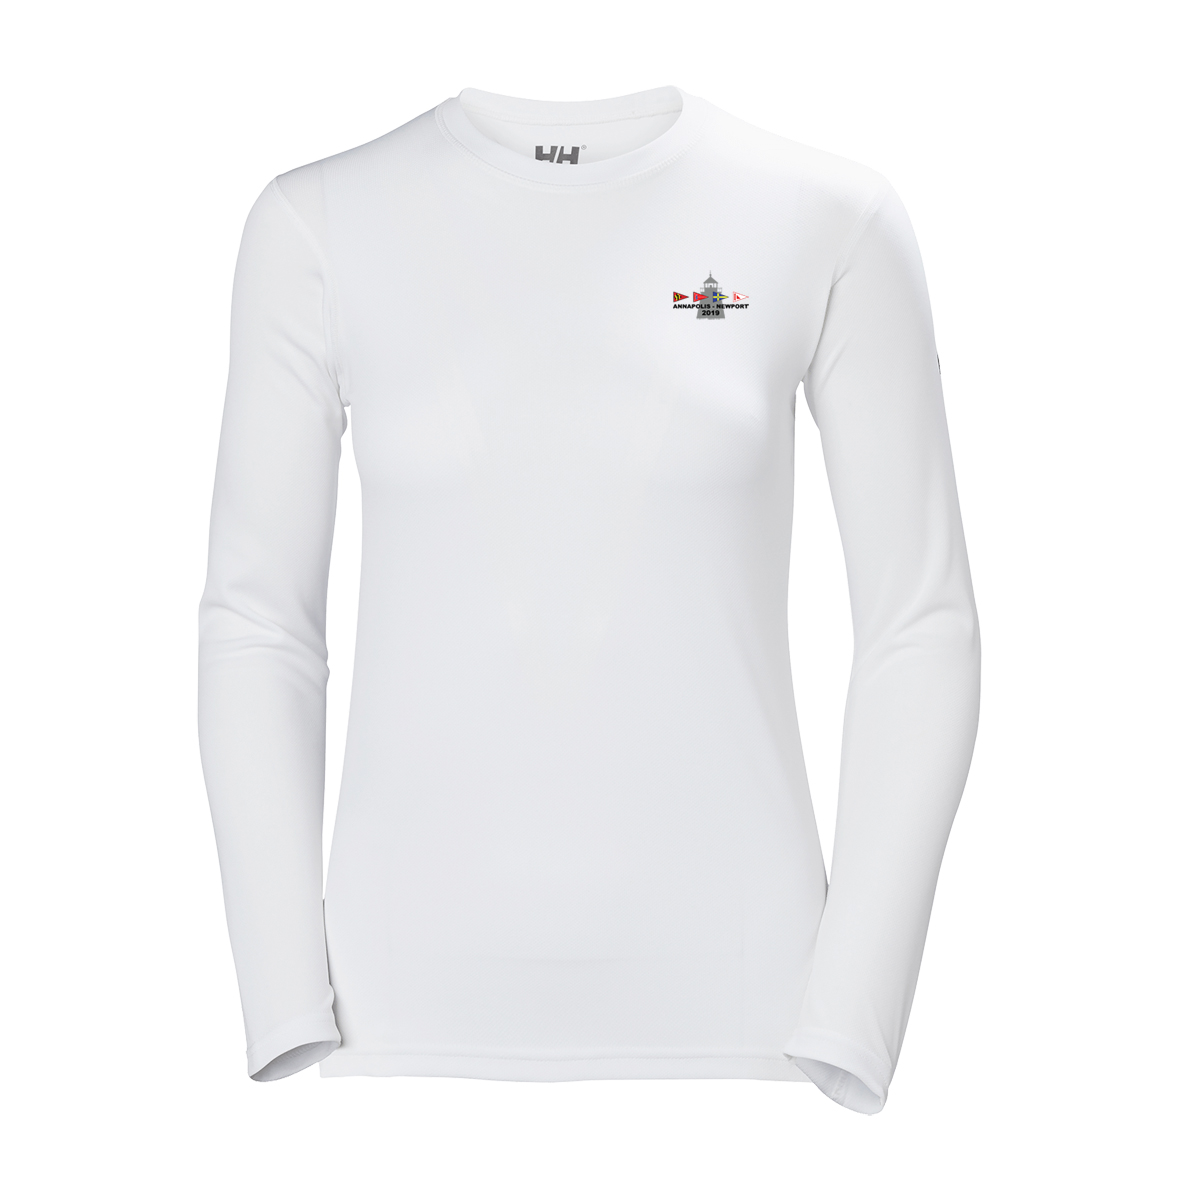 A2N19- HELLY HANSEN WOMEN'S TECH LONG SLEEVE